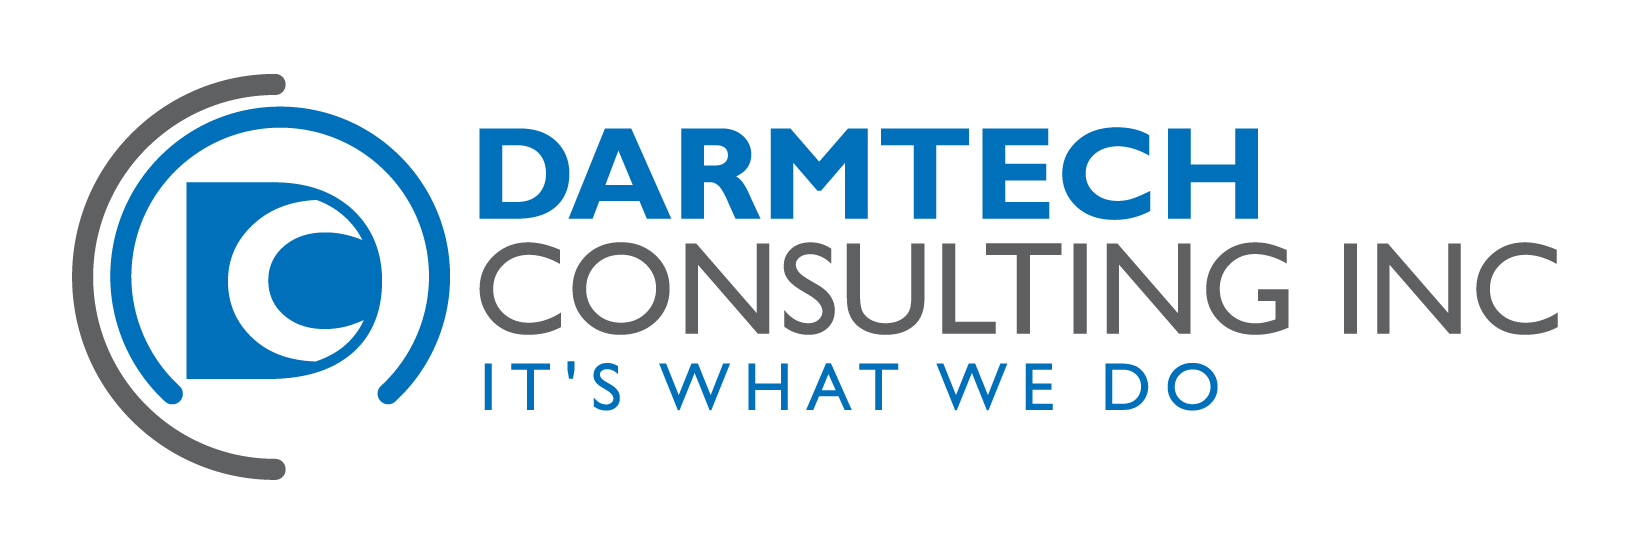 DARMTECH Consulting Inc.